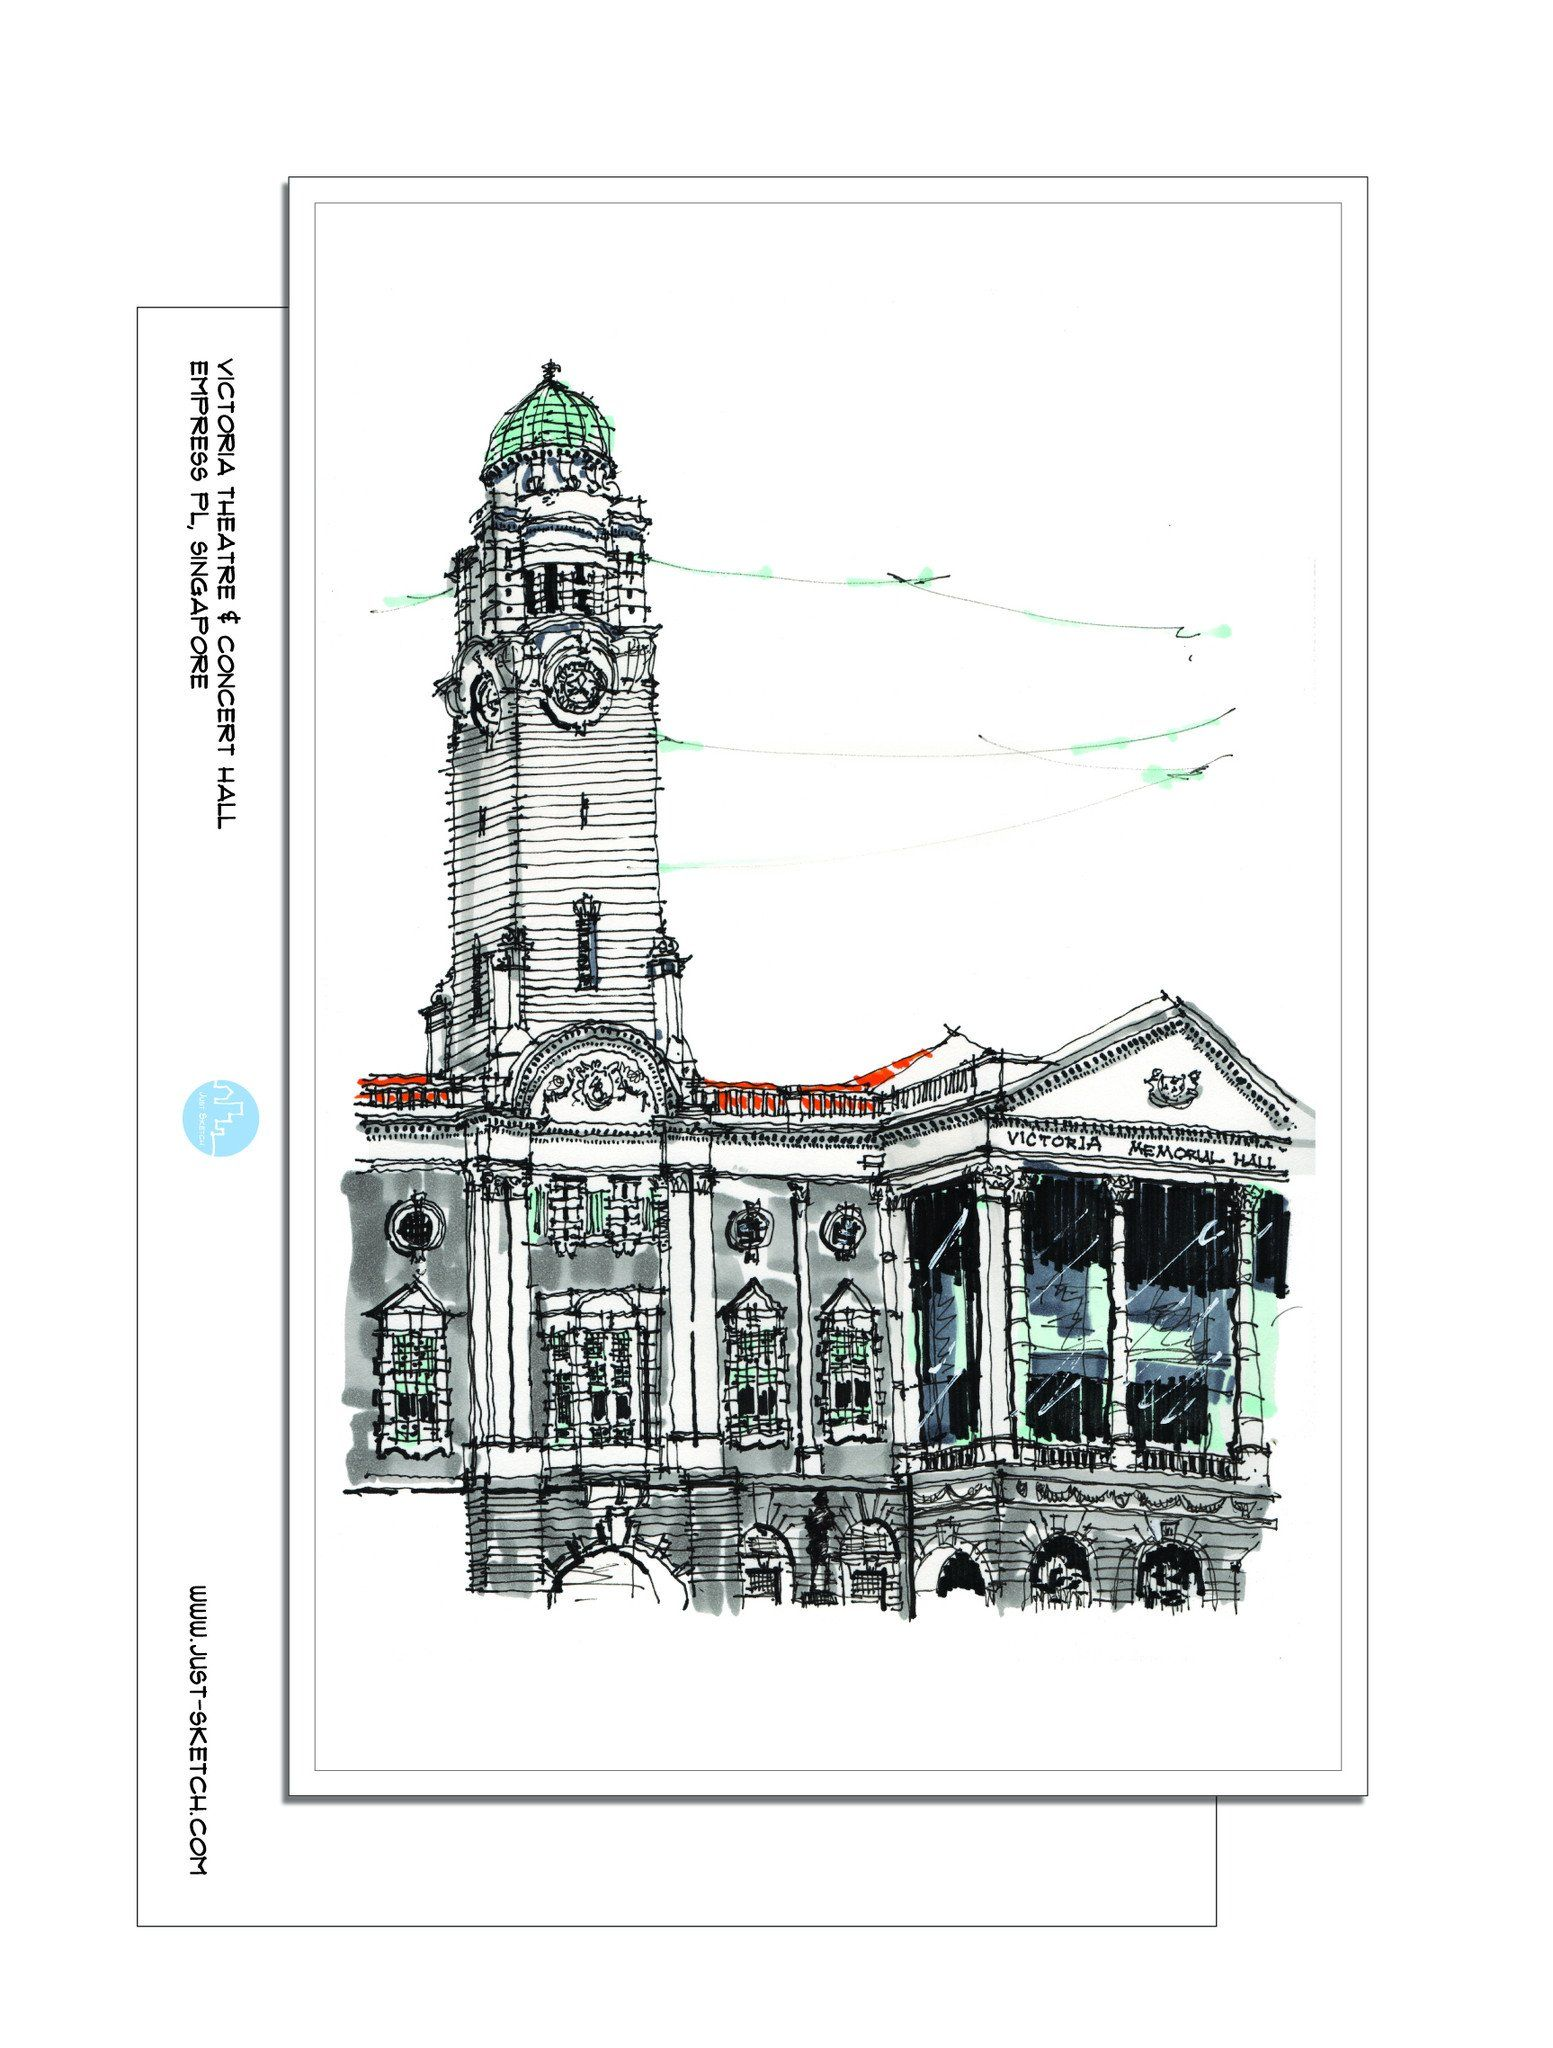 Victoria Theatre & Concert Hall Postcard - Local Postcards - Just Sketch - Naiise